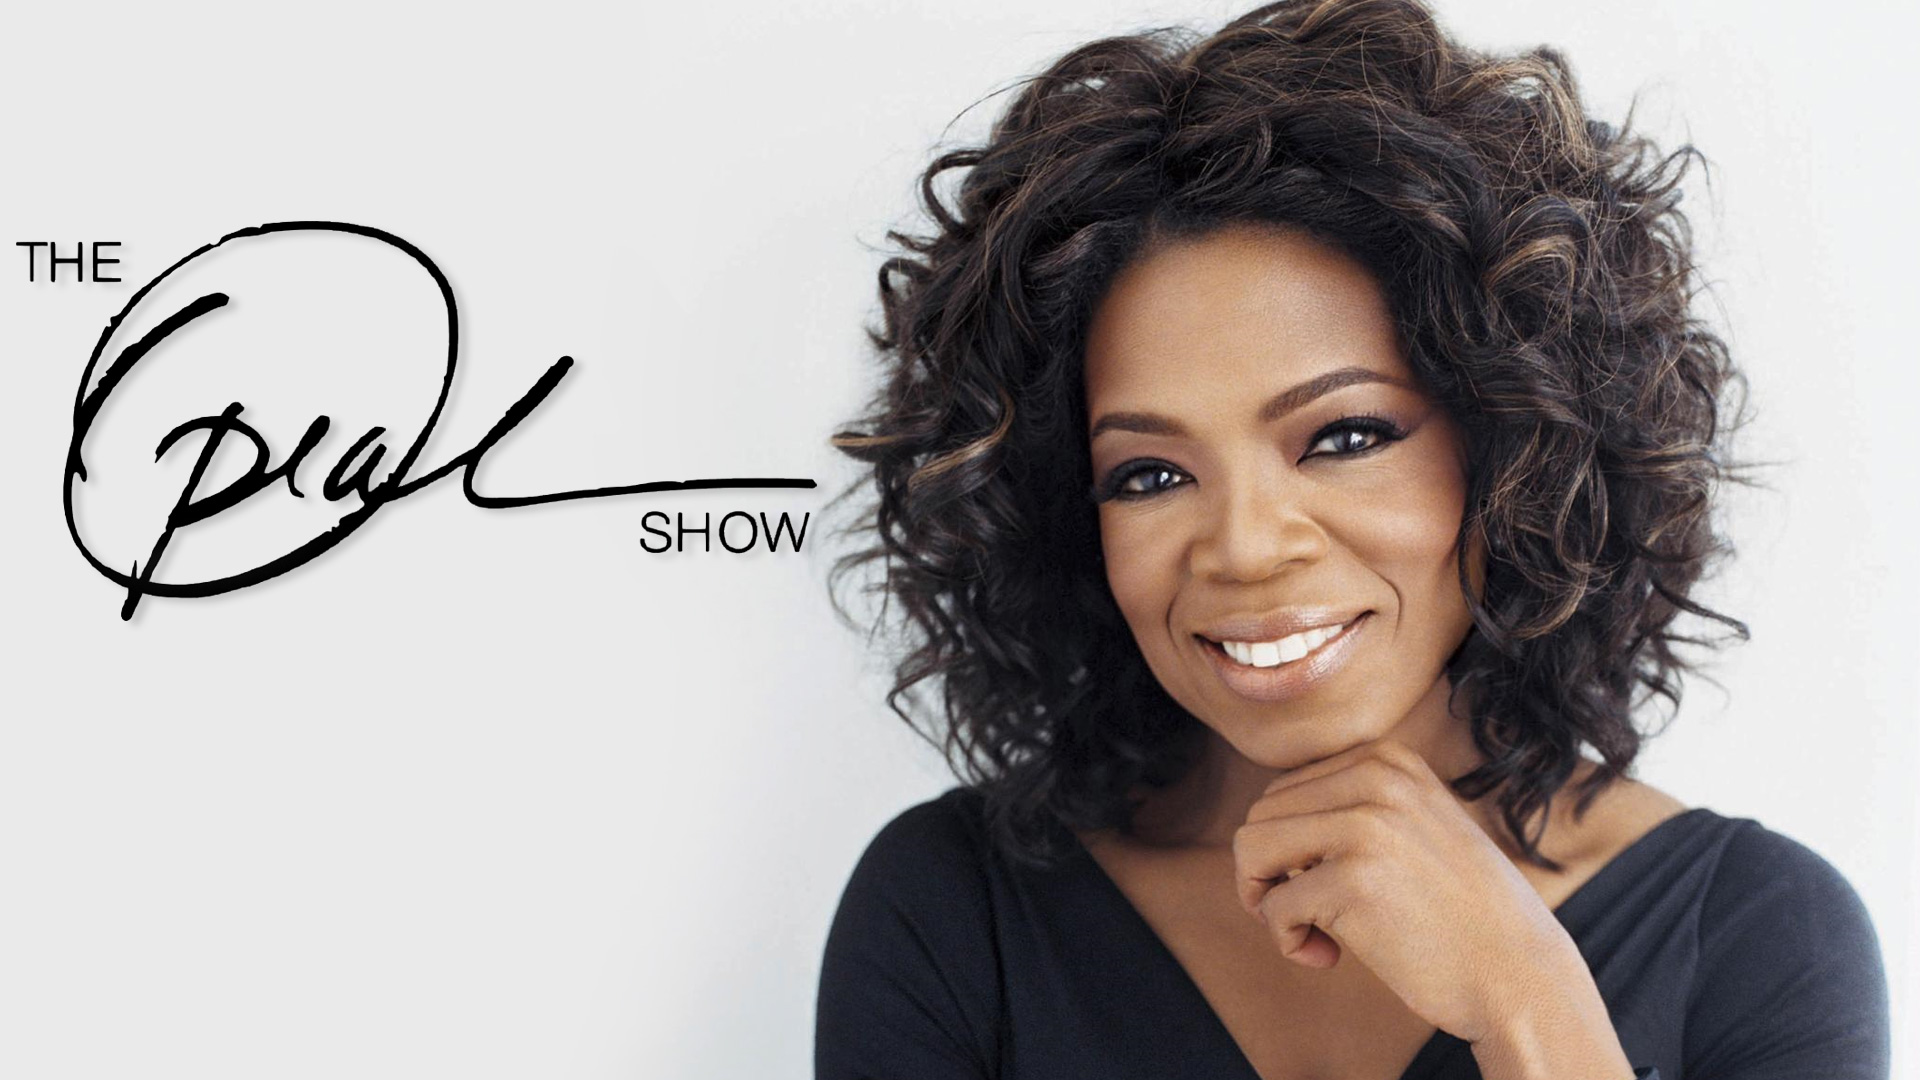 talk show and oprah winfrey Oprah winfrey: oprah winfrey, american television personality, actress, and entrepreneur whose syndicated daily talk show was among the most popular of the genre.